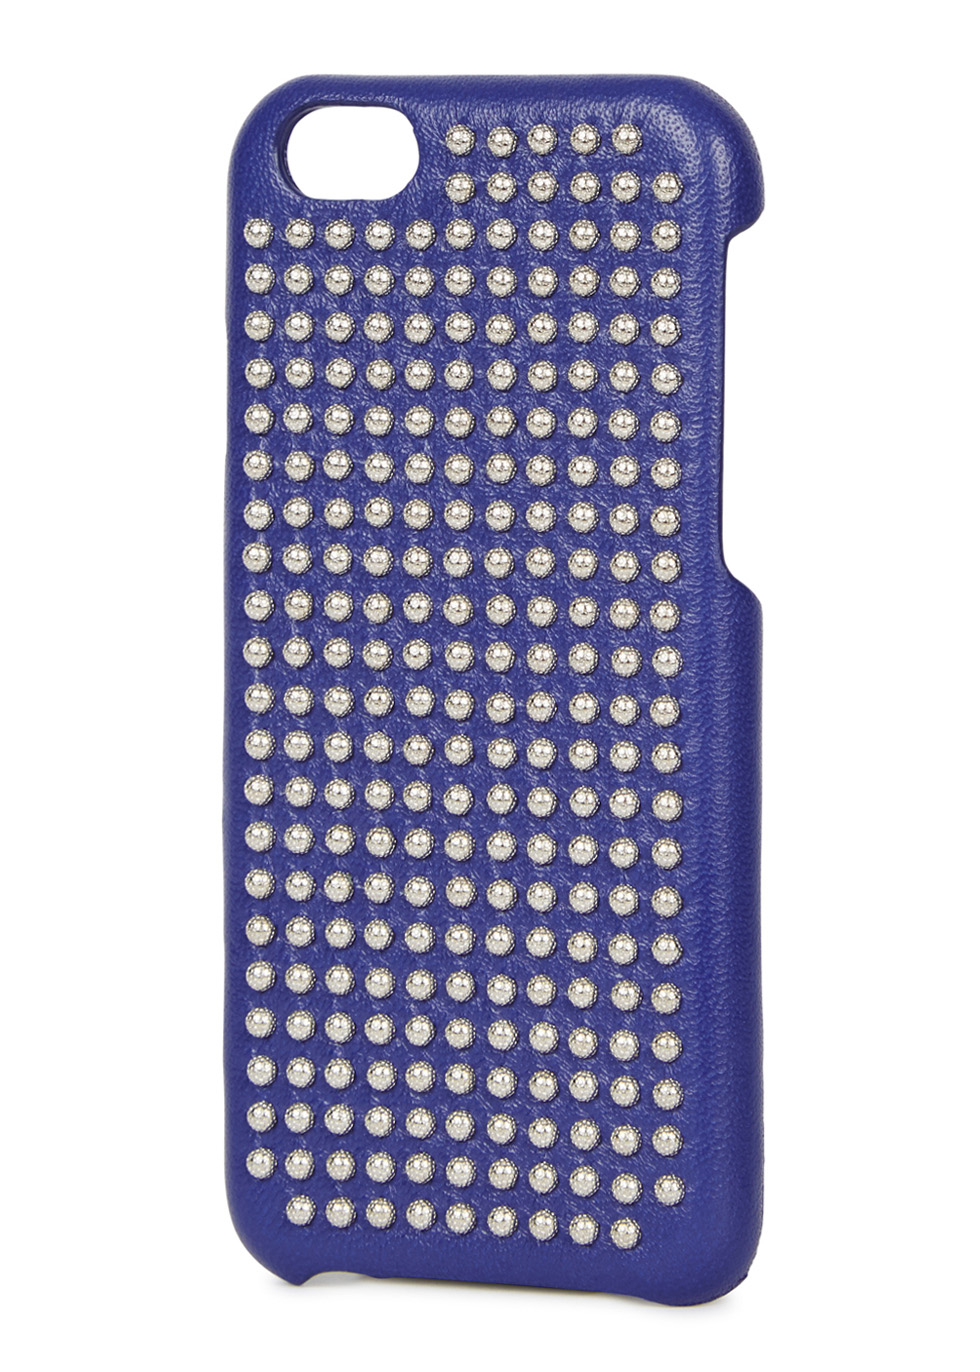 Purple studded leather iPhone 6/6S case - The Case Factory